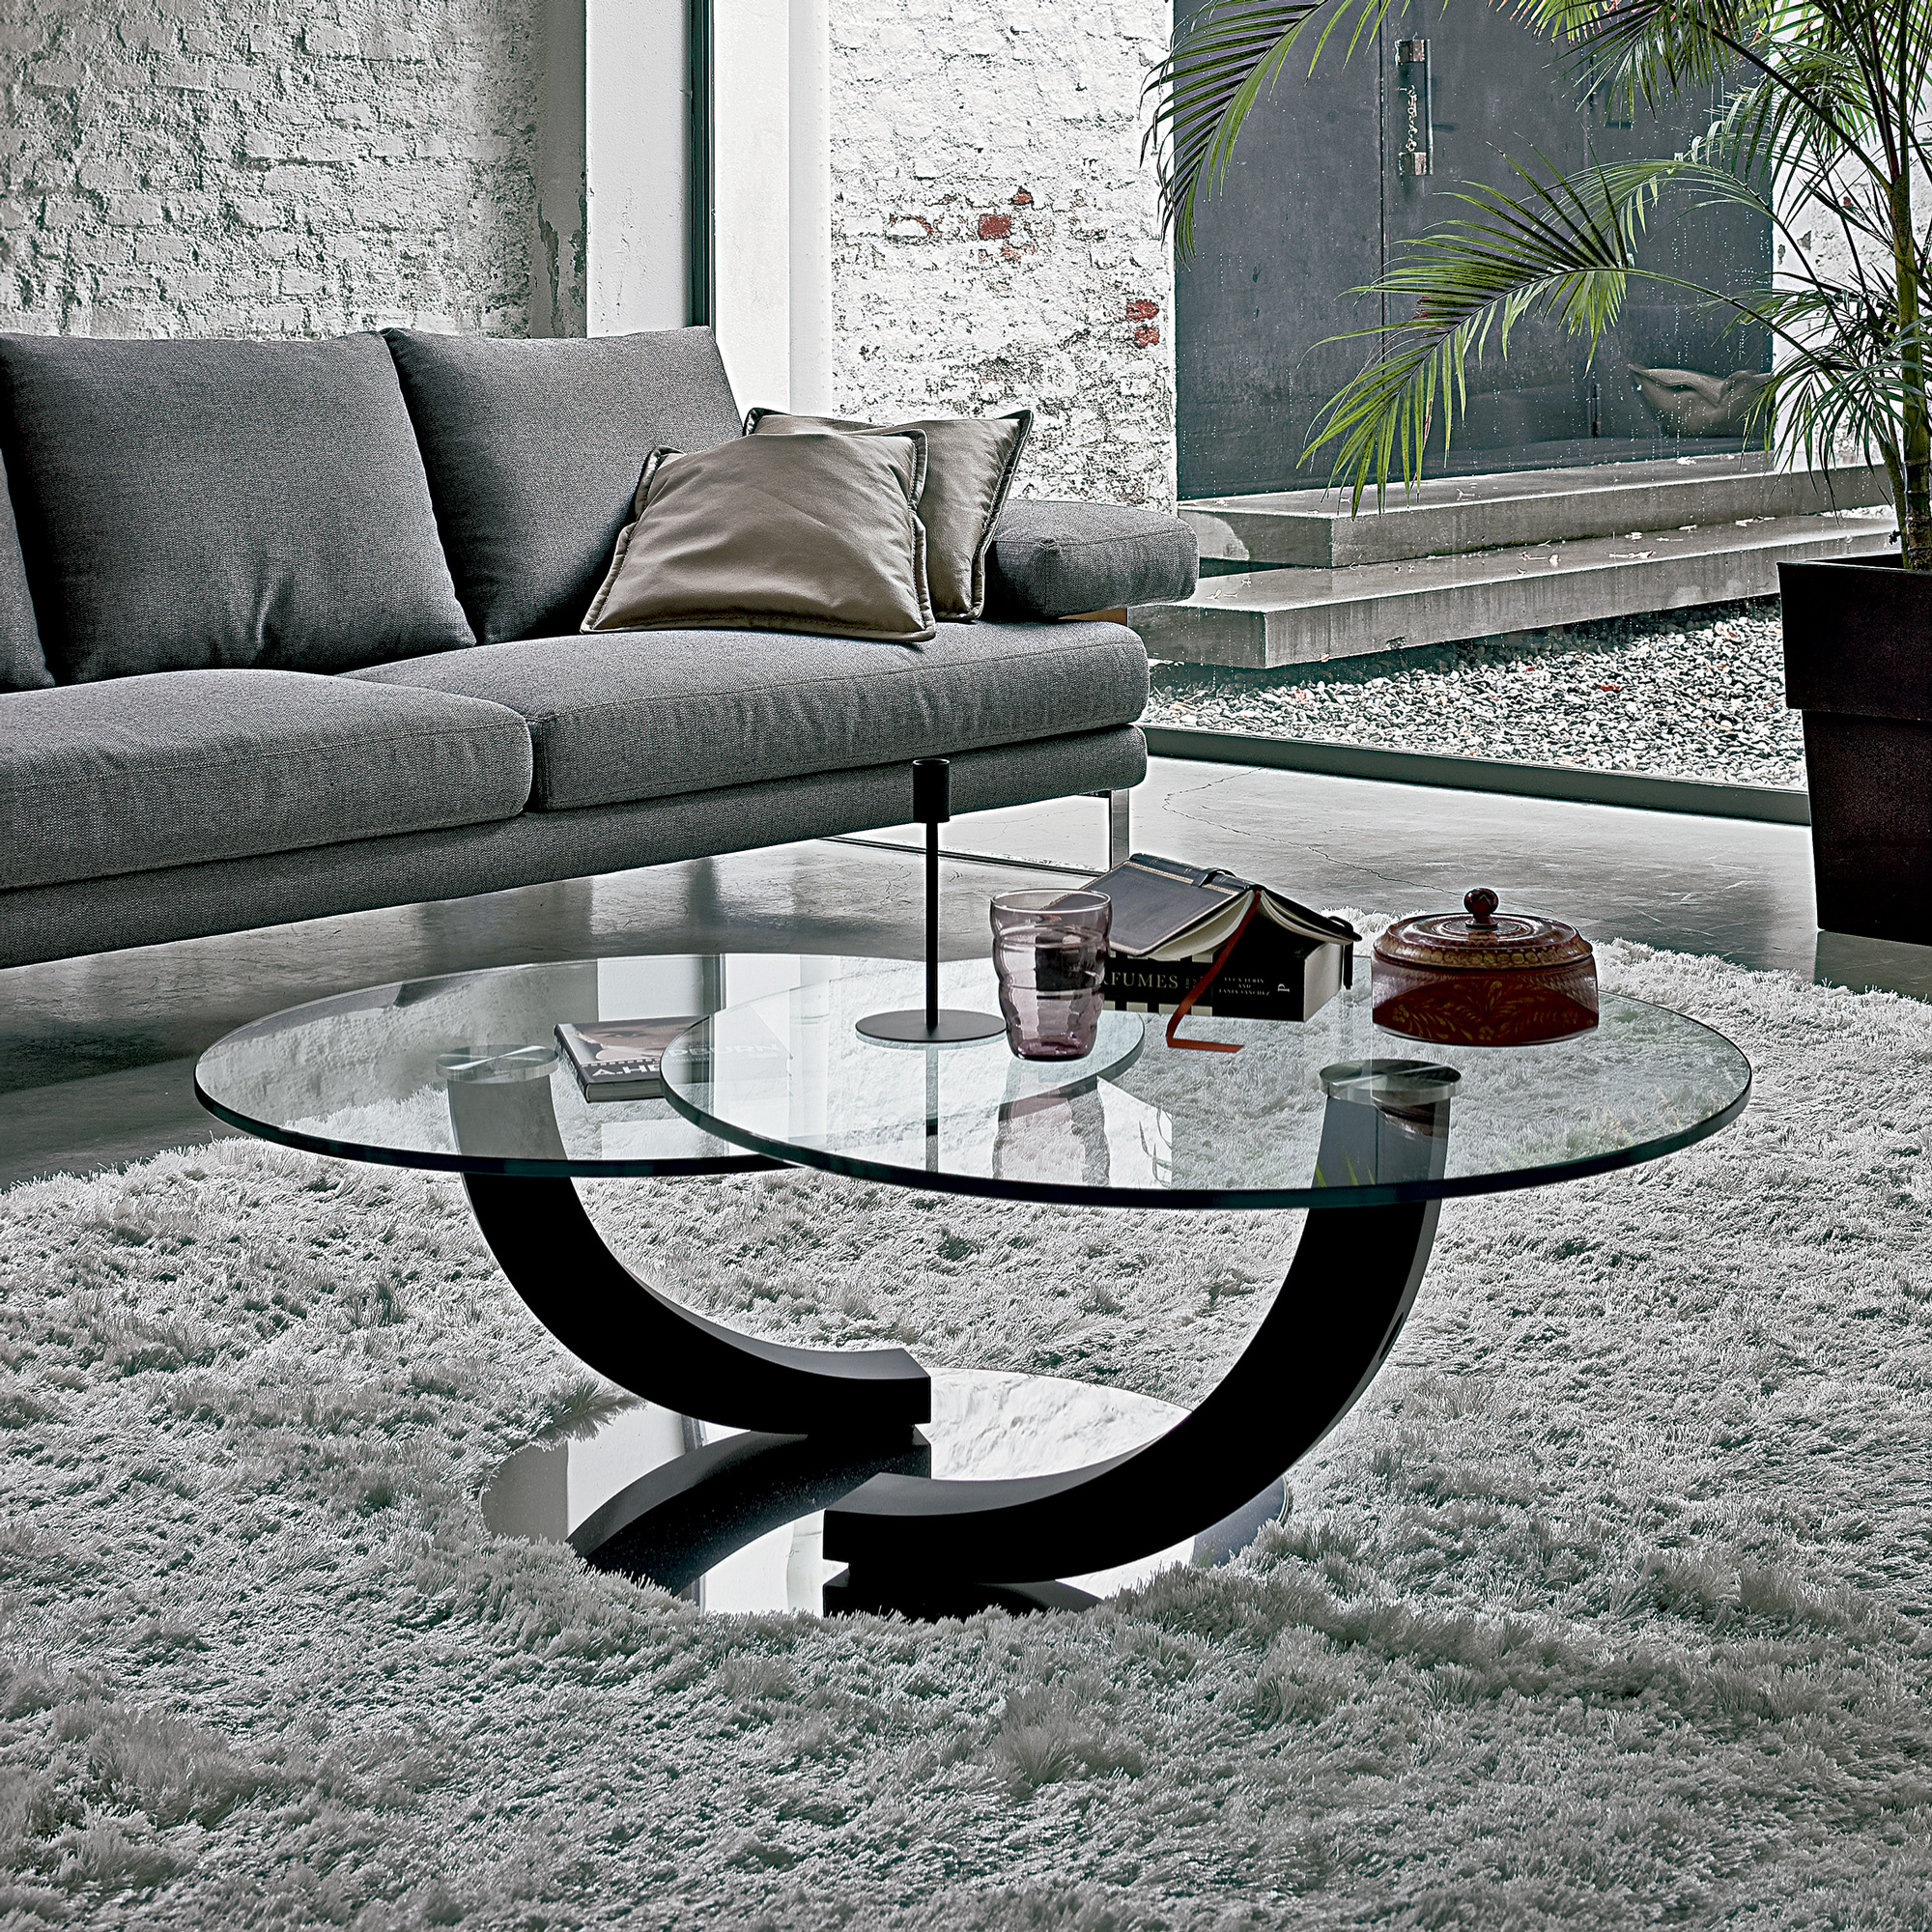 Cobra Inox Luxury Designer Coffee Table Italian Designer